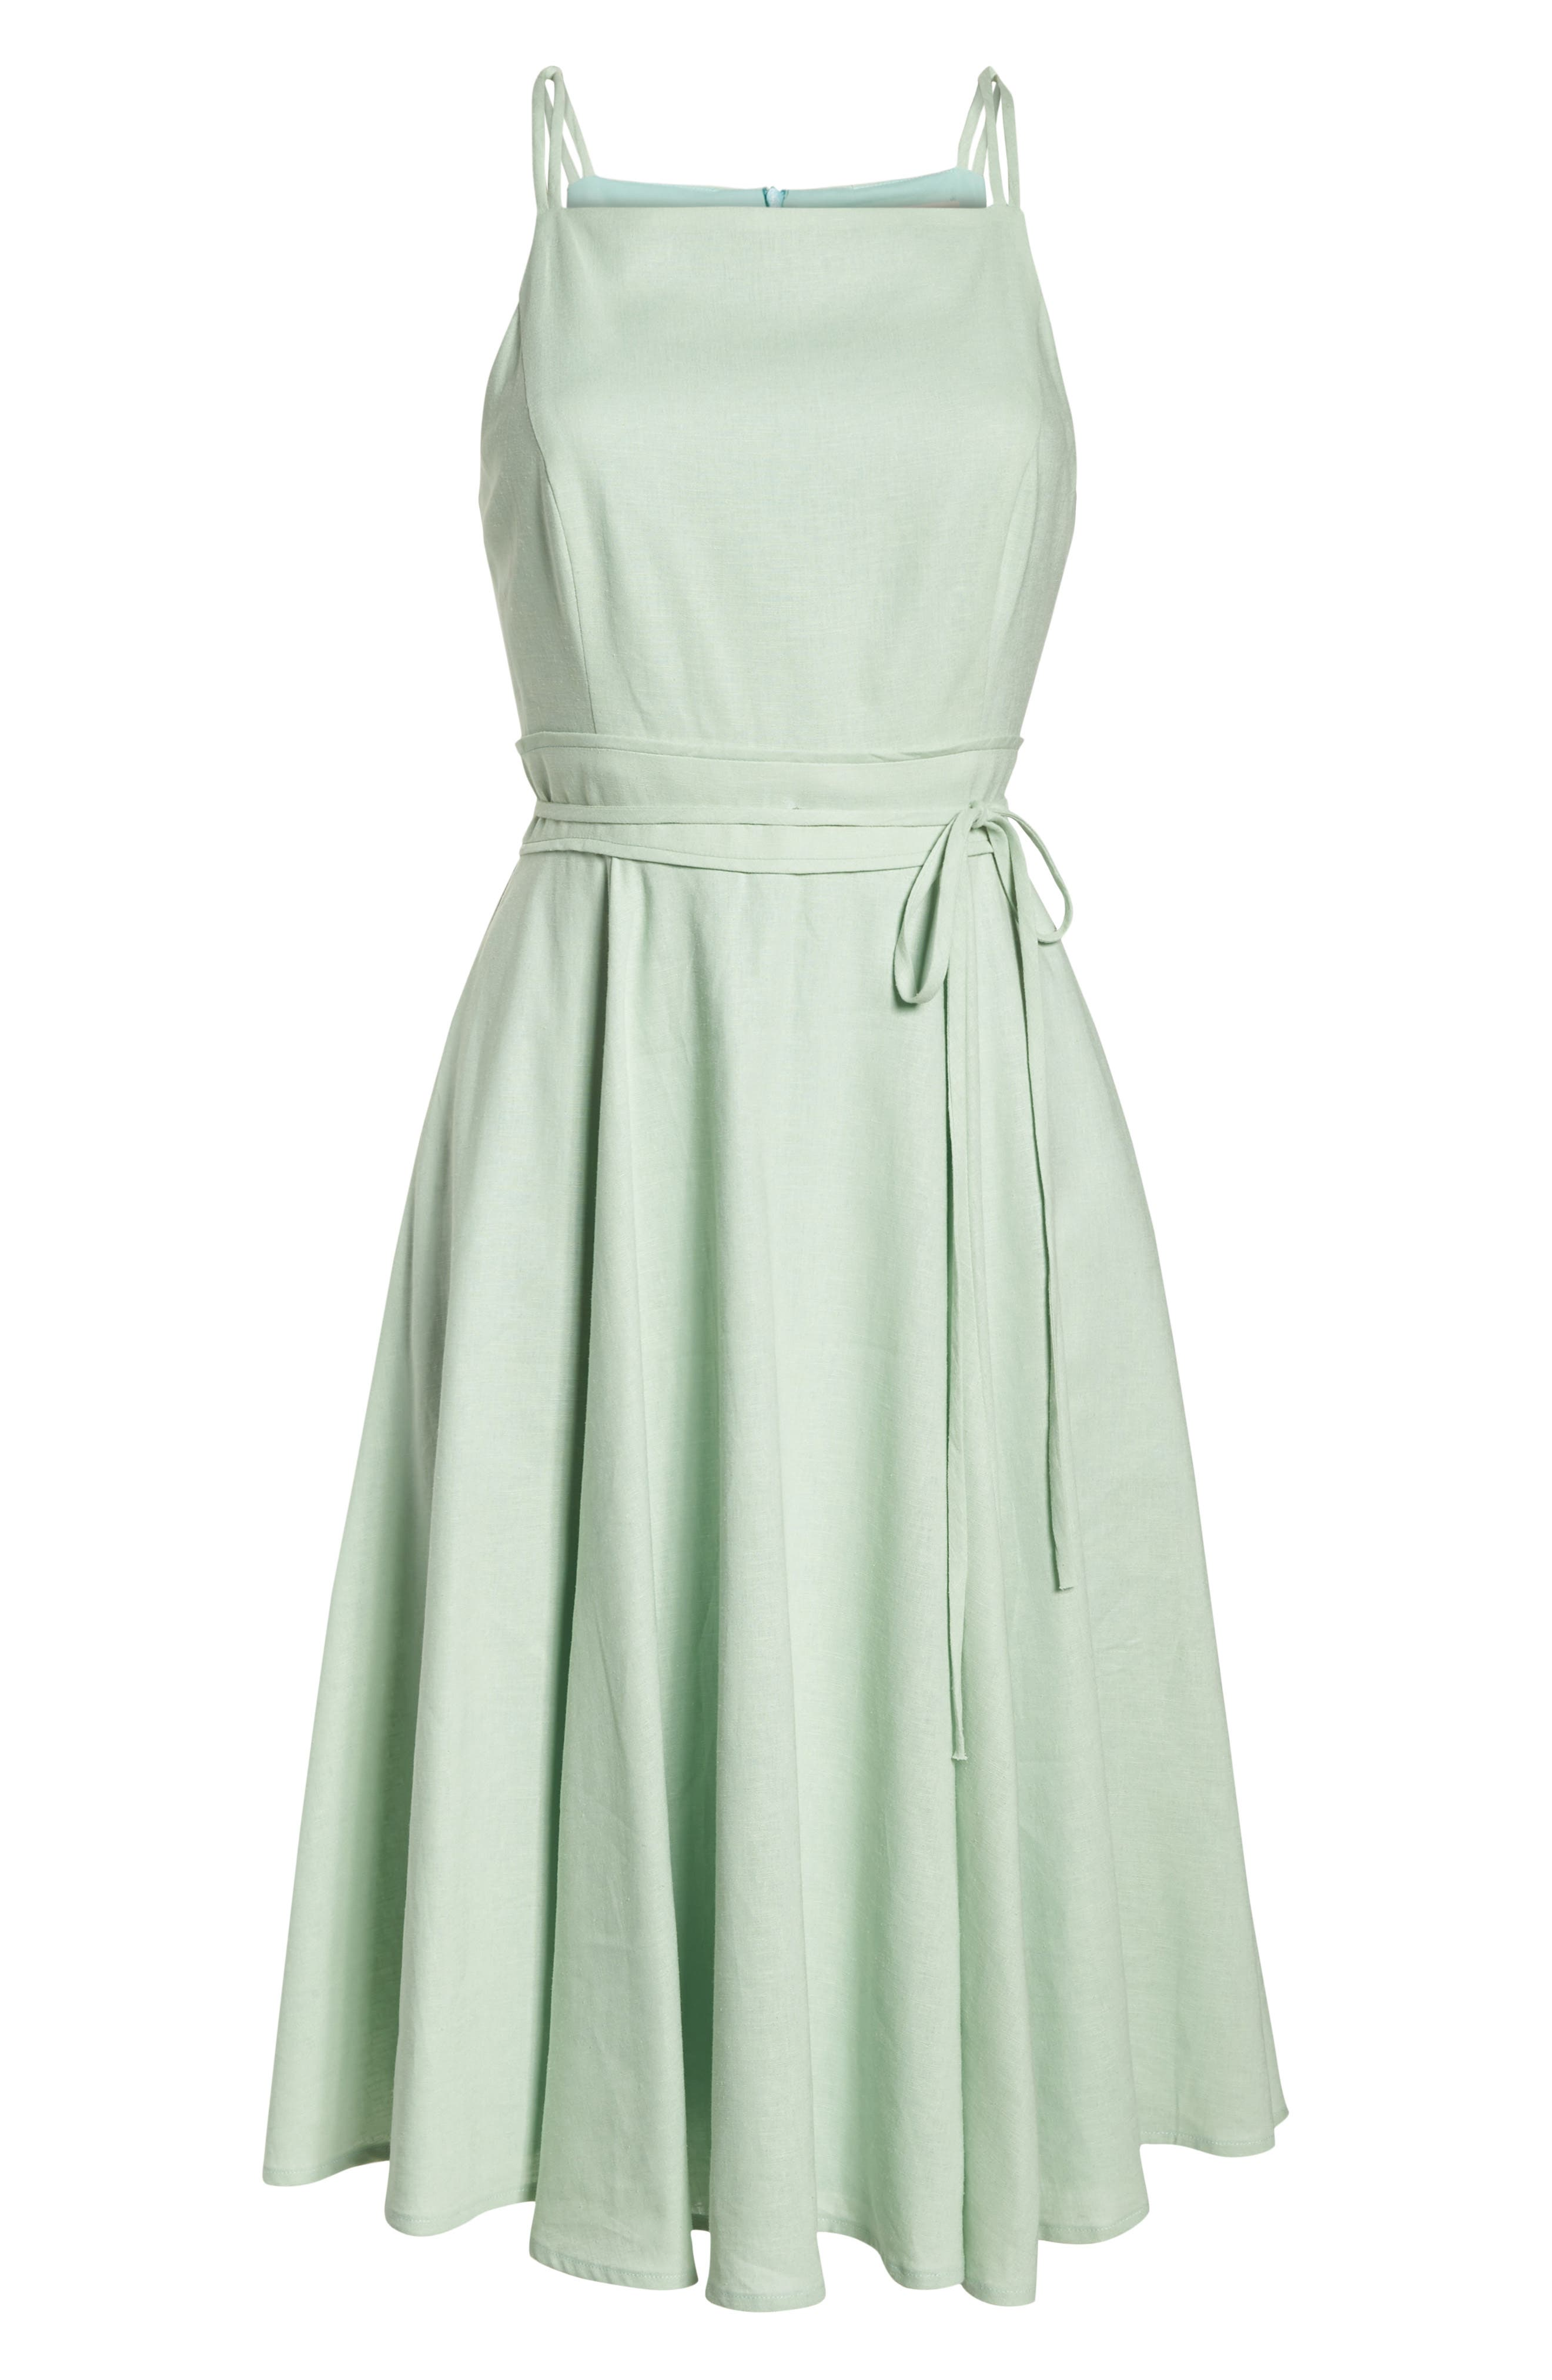 Caroline Linen Blend Fit & Flare Dress,                             Alternate thumbnail 8, color,                             Mint Leaf